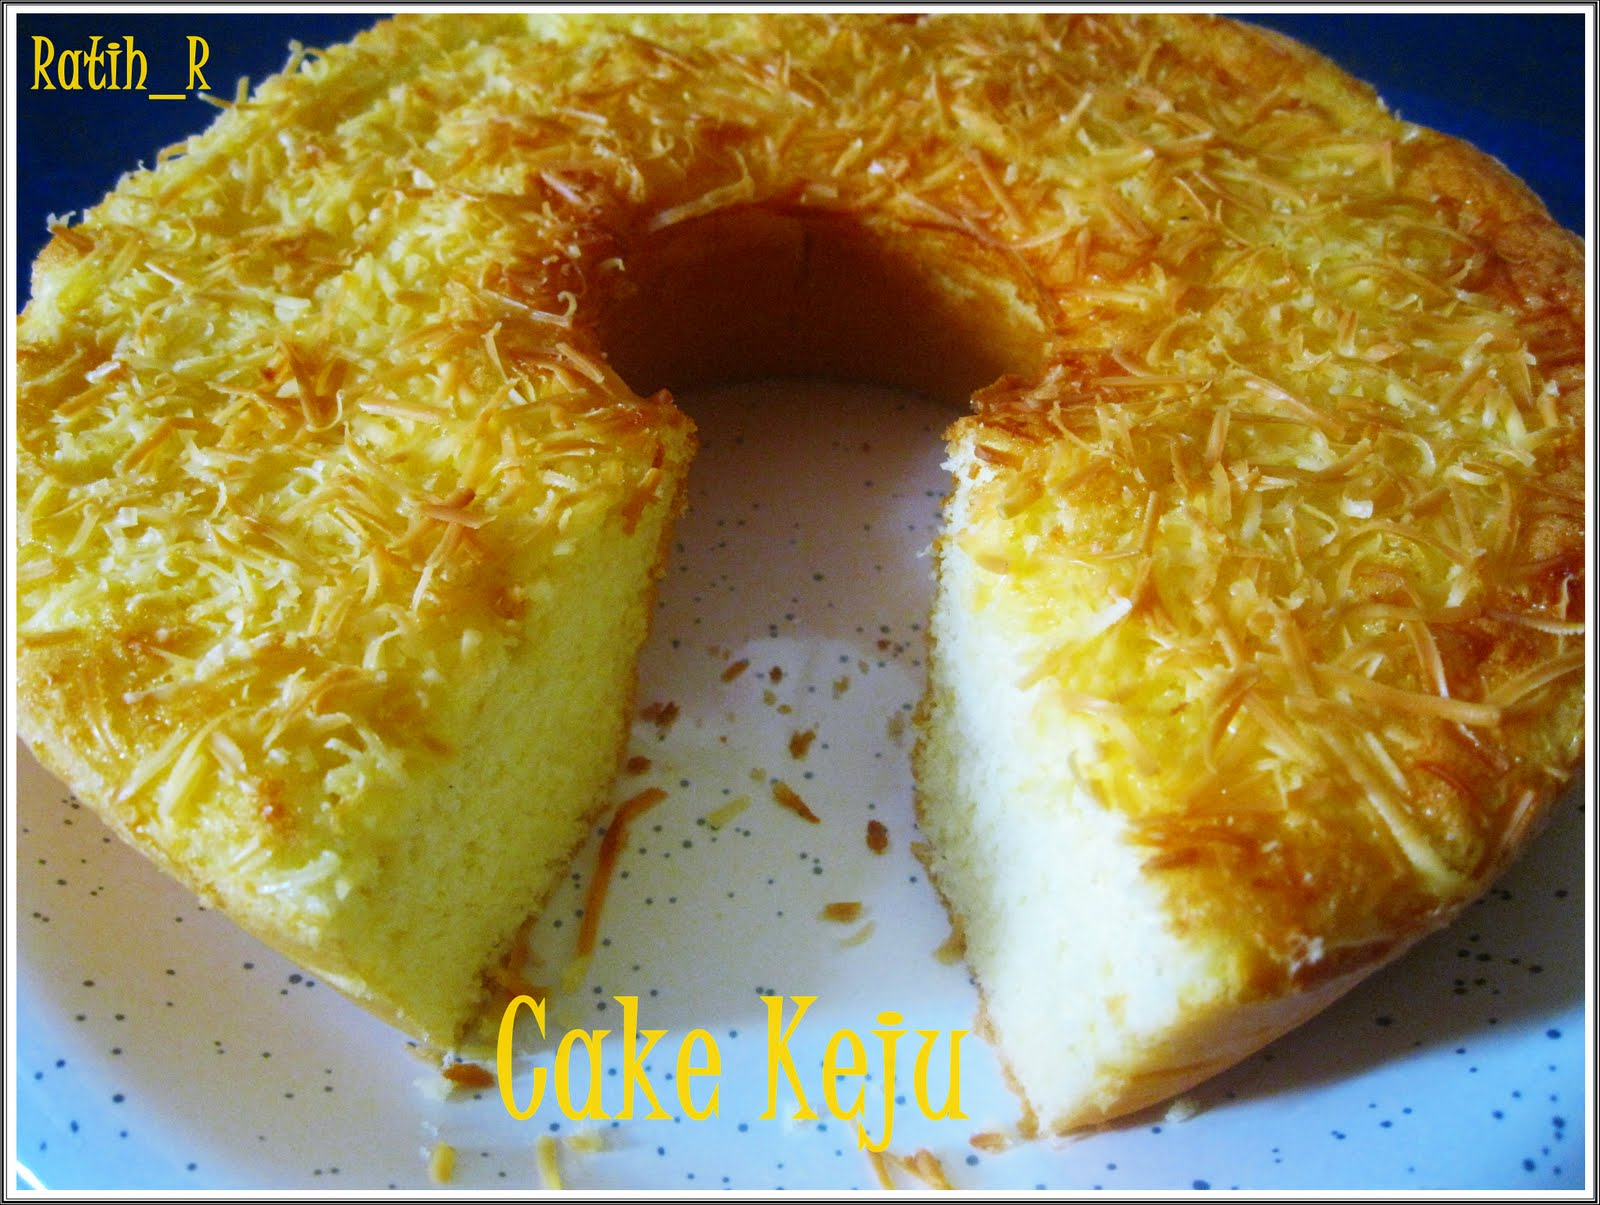 mirip2 chiffon khan...? hehehe happy baking yaaa....^_^